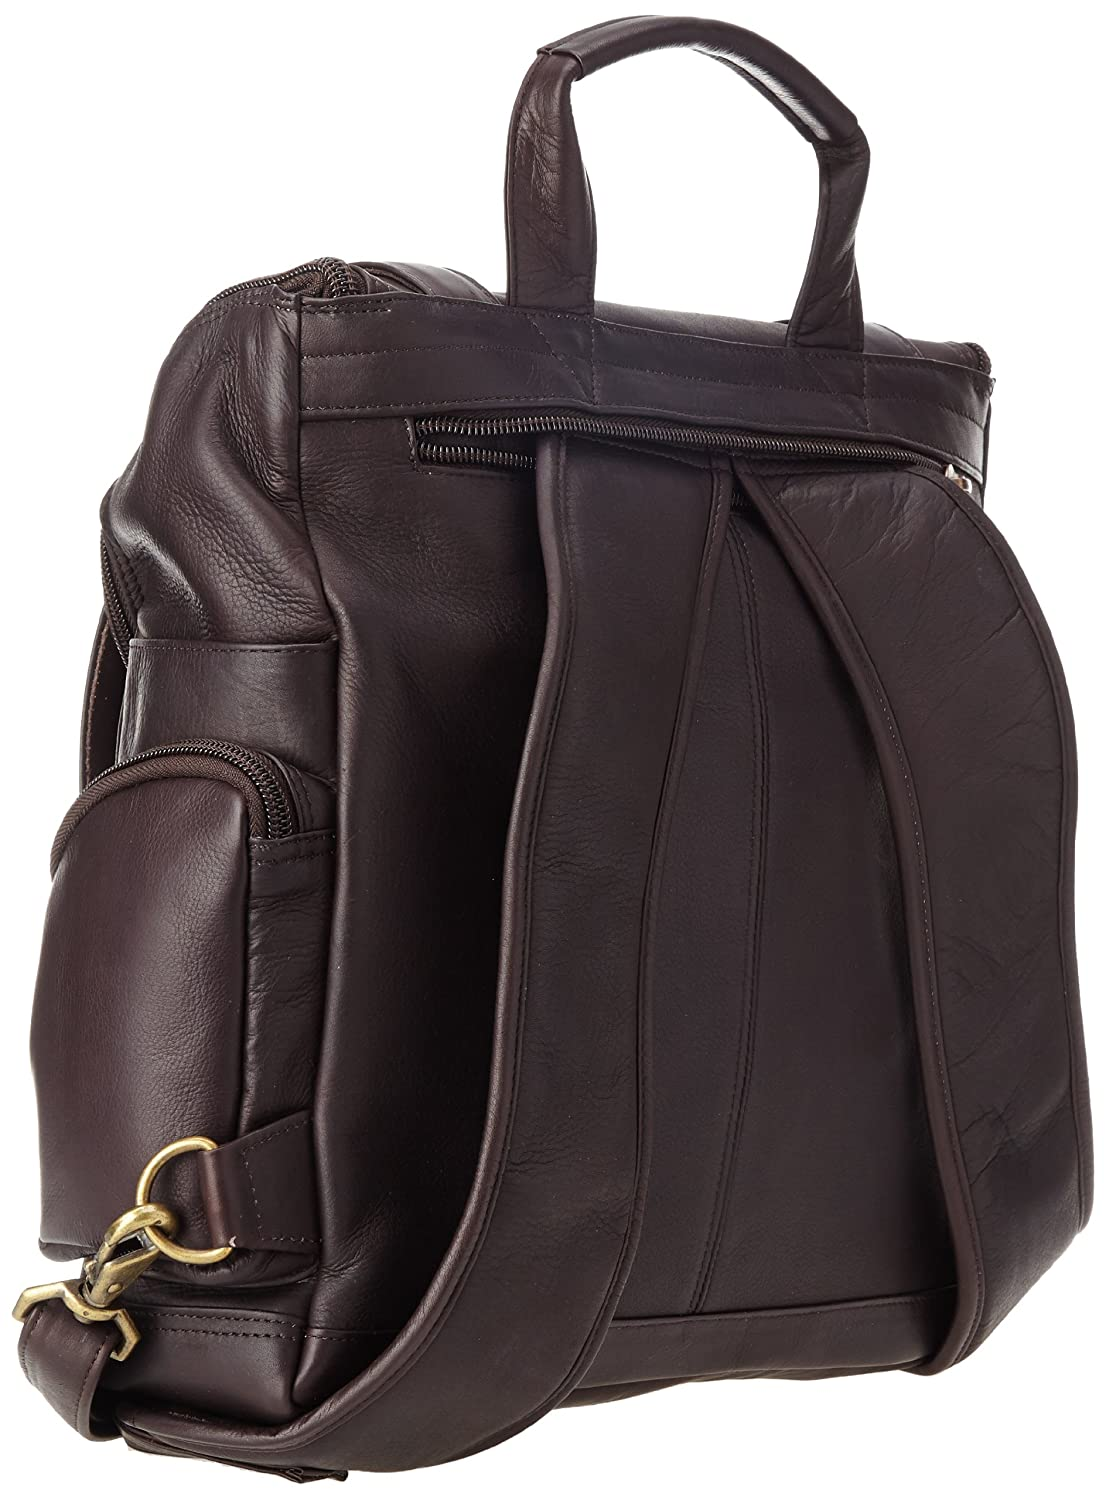 Claire Chase Portifino Back Pack One Size Cafe